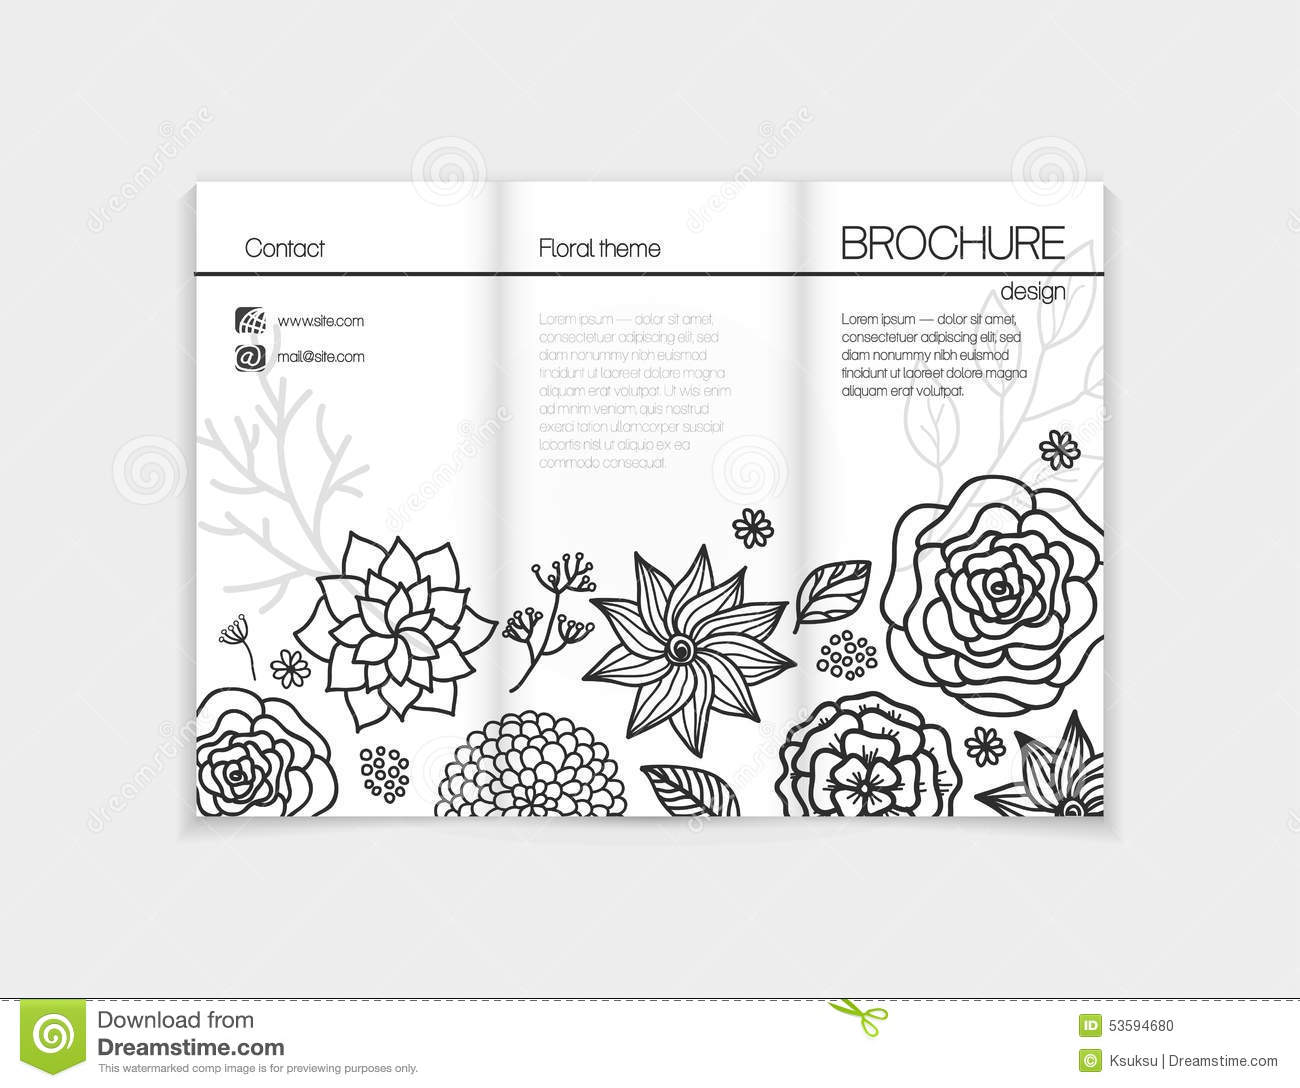 black brochure template - black and white floral brochure template design stock